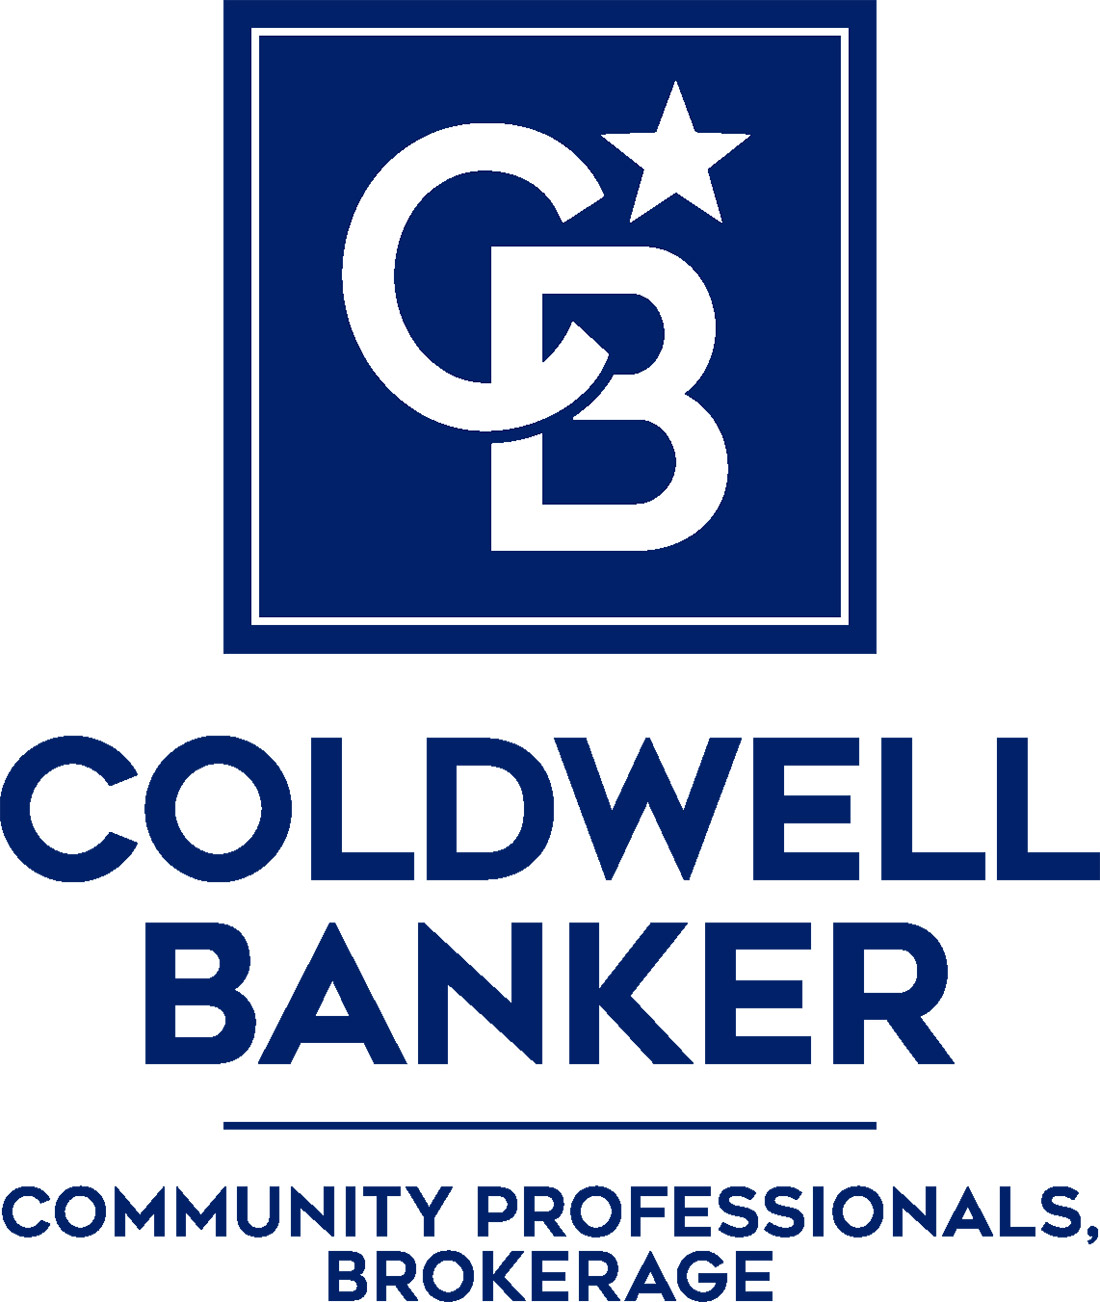 Janet Beckley - Coldwell Banker Community Professionals Logo